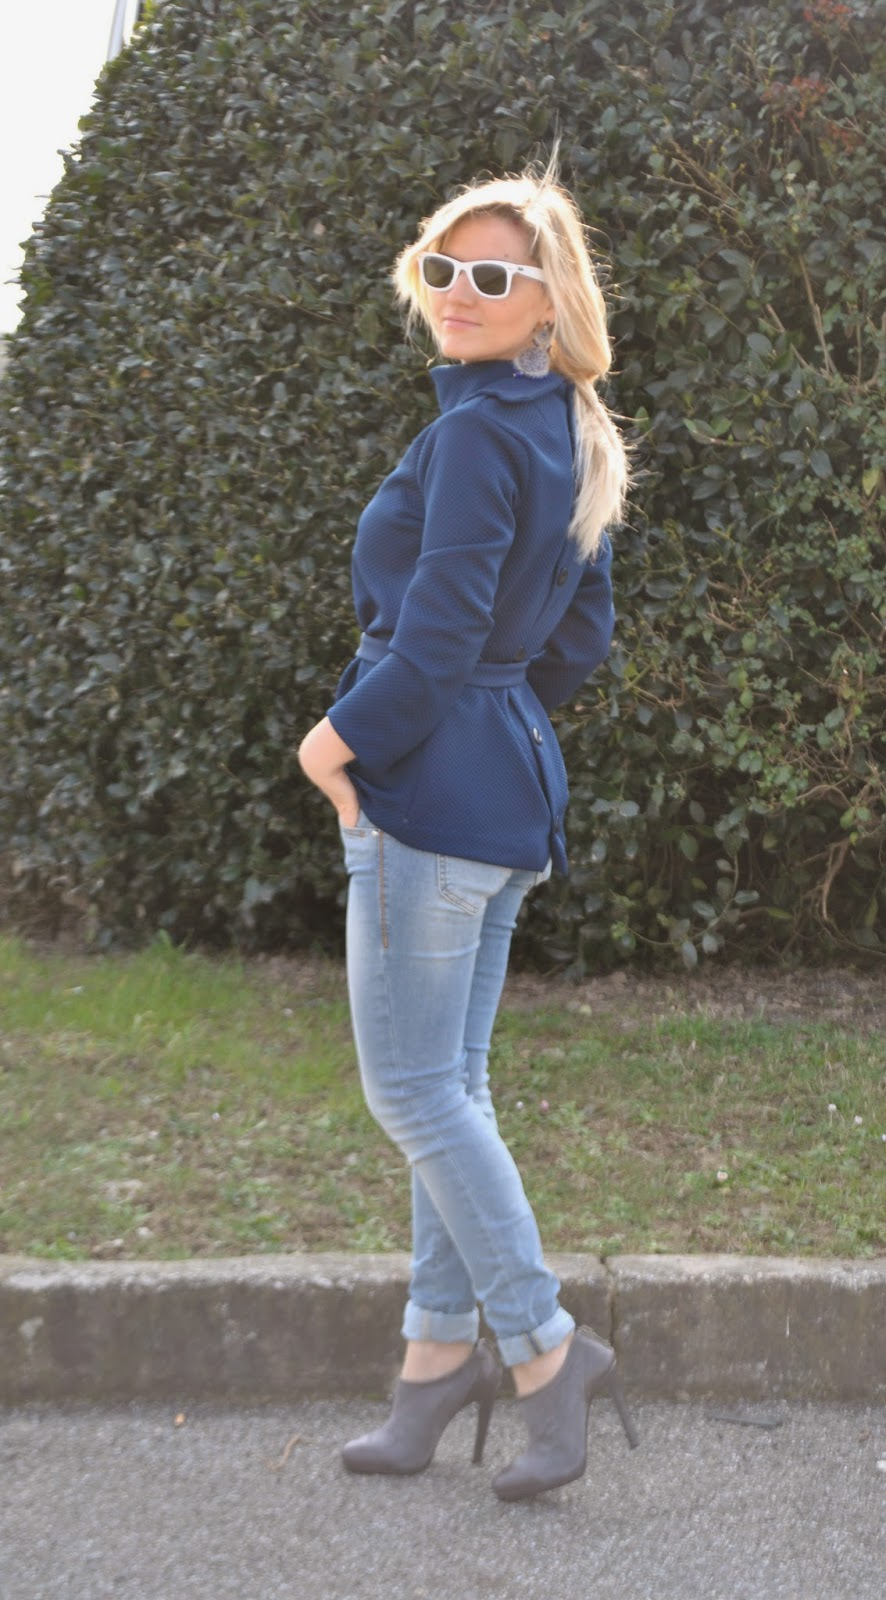 outfit giacca anni '60 outfit blu outfit jeans e tacchi outfit jeans skinny fornarina mariafelicia magno colorblock by felym fashion blog italiani mariafelicia magno fashion blogger come abbinare il blu maglia anni sessanta maglia collo alto maglia a ciambella outfit invernali casual outfit marzo 2015 outfit invernali donna casual outfit burda maglia anni '60 burda come abbinare il grigio fashion blogger italiane come abbinare gli occhiali da sole bianchi come abbinare il grigio outfit scarpe grigie orologio daniel wellington winter outfit blue outfit how to wear jeans and heels  ffashion bloggers italy blonde girl blonde hair